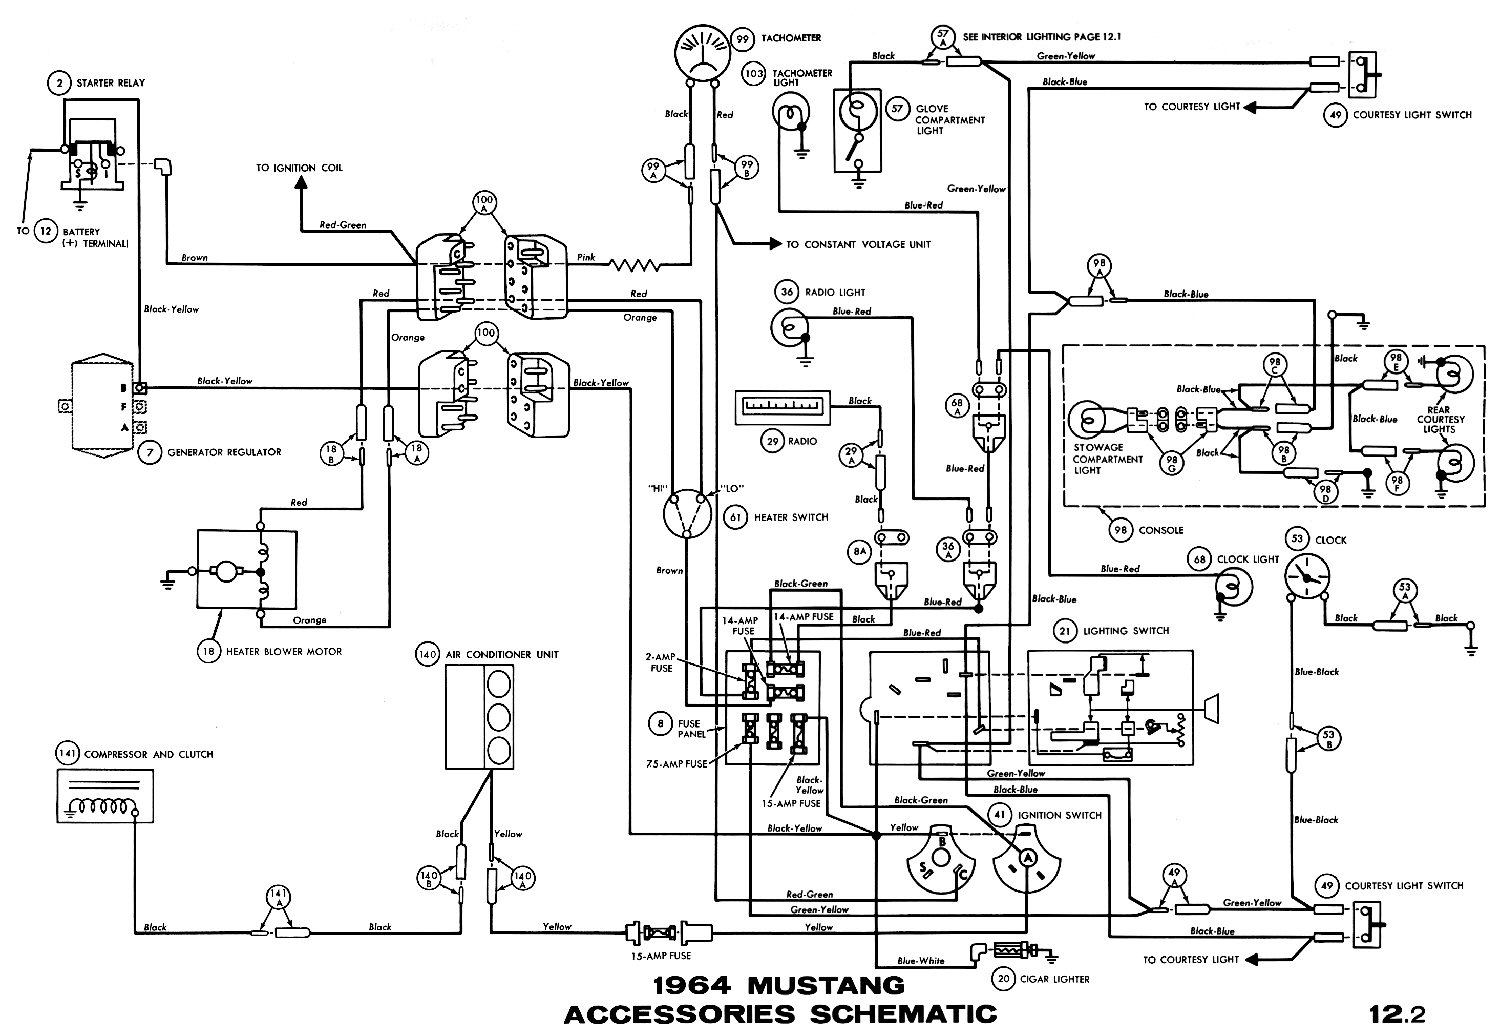 Gm Ecm Wiring Diagram furthermore I62 photobucket   albums h89 jayhawkclint charging circuit2 further 1968 Mustang Alternator Wiring Wiring Diagrams in addition 85 Ford 150 351 Alternator Wiring Diagram also 1973 Vw Super Beetle Engine Electrical. on 72 chevy engine wire diagram